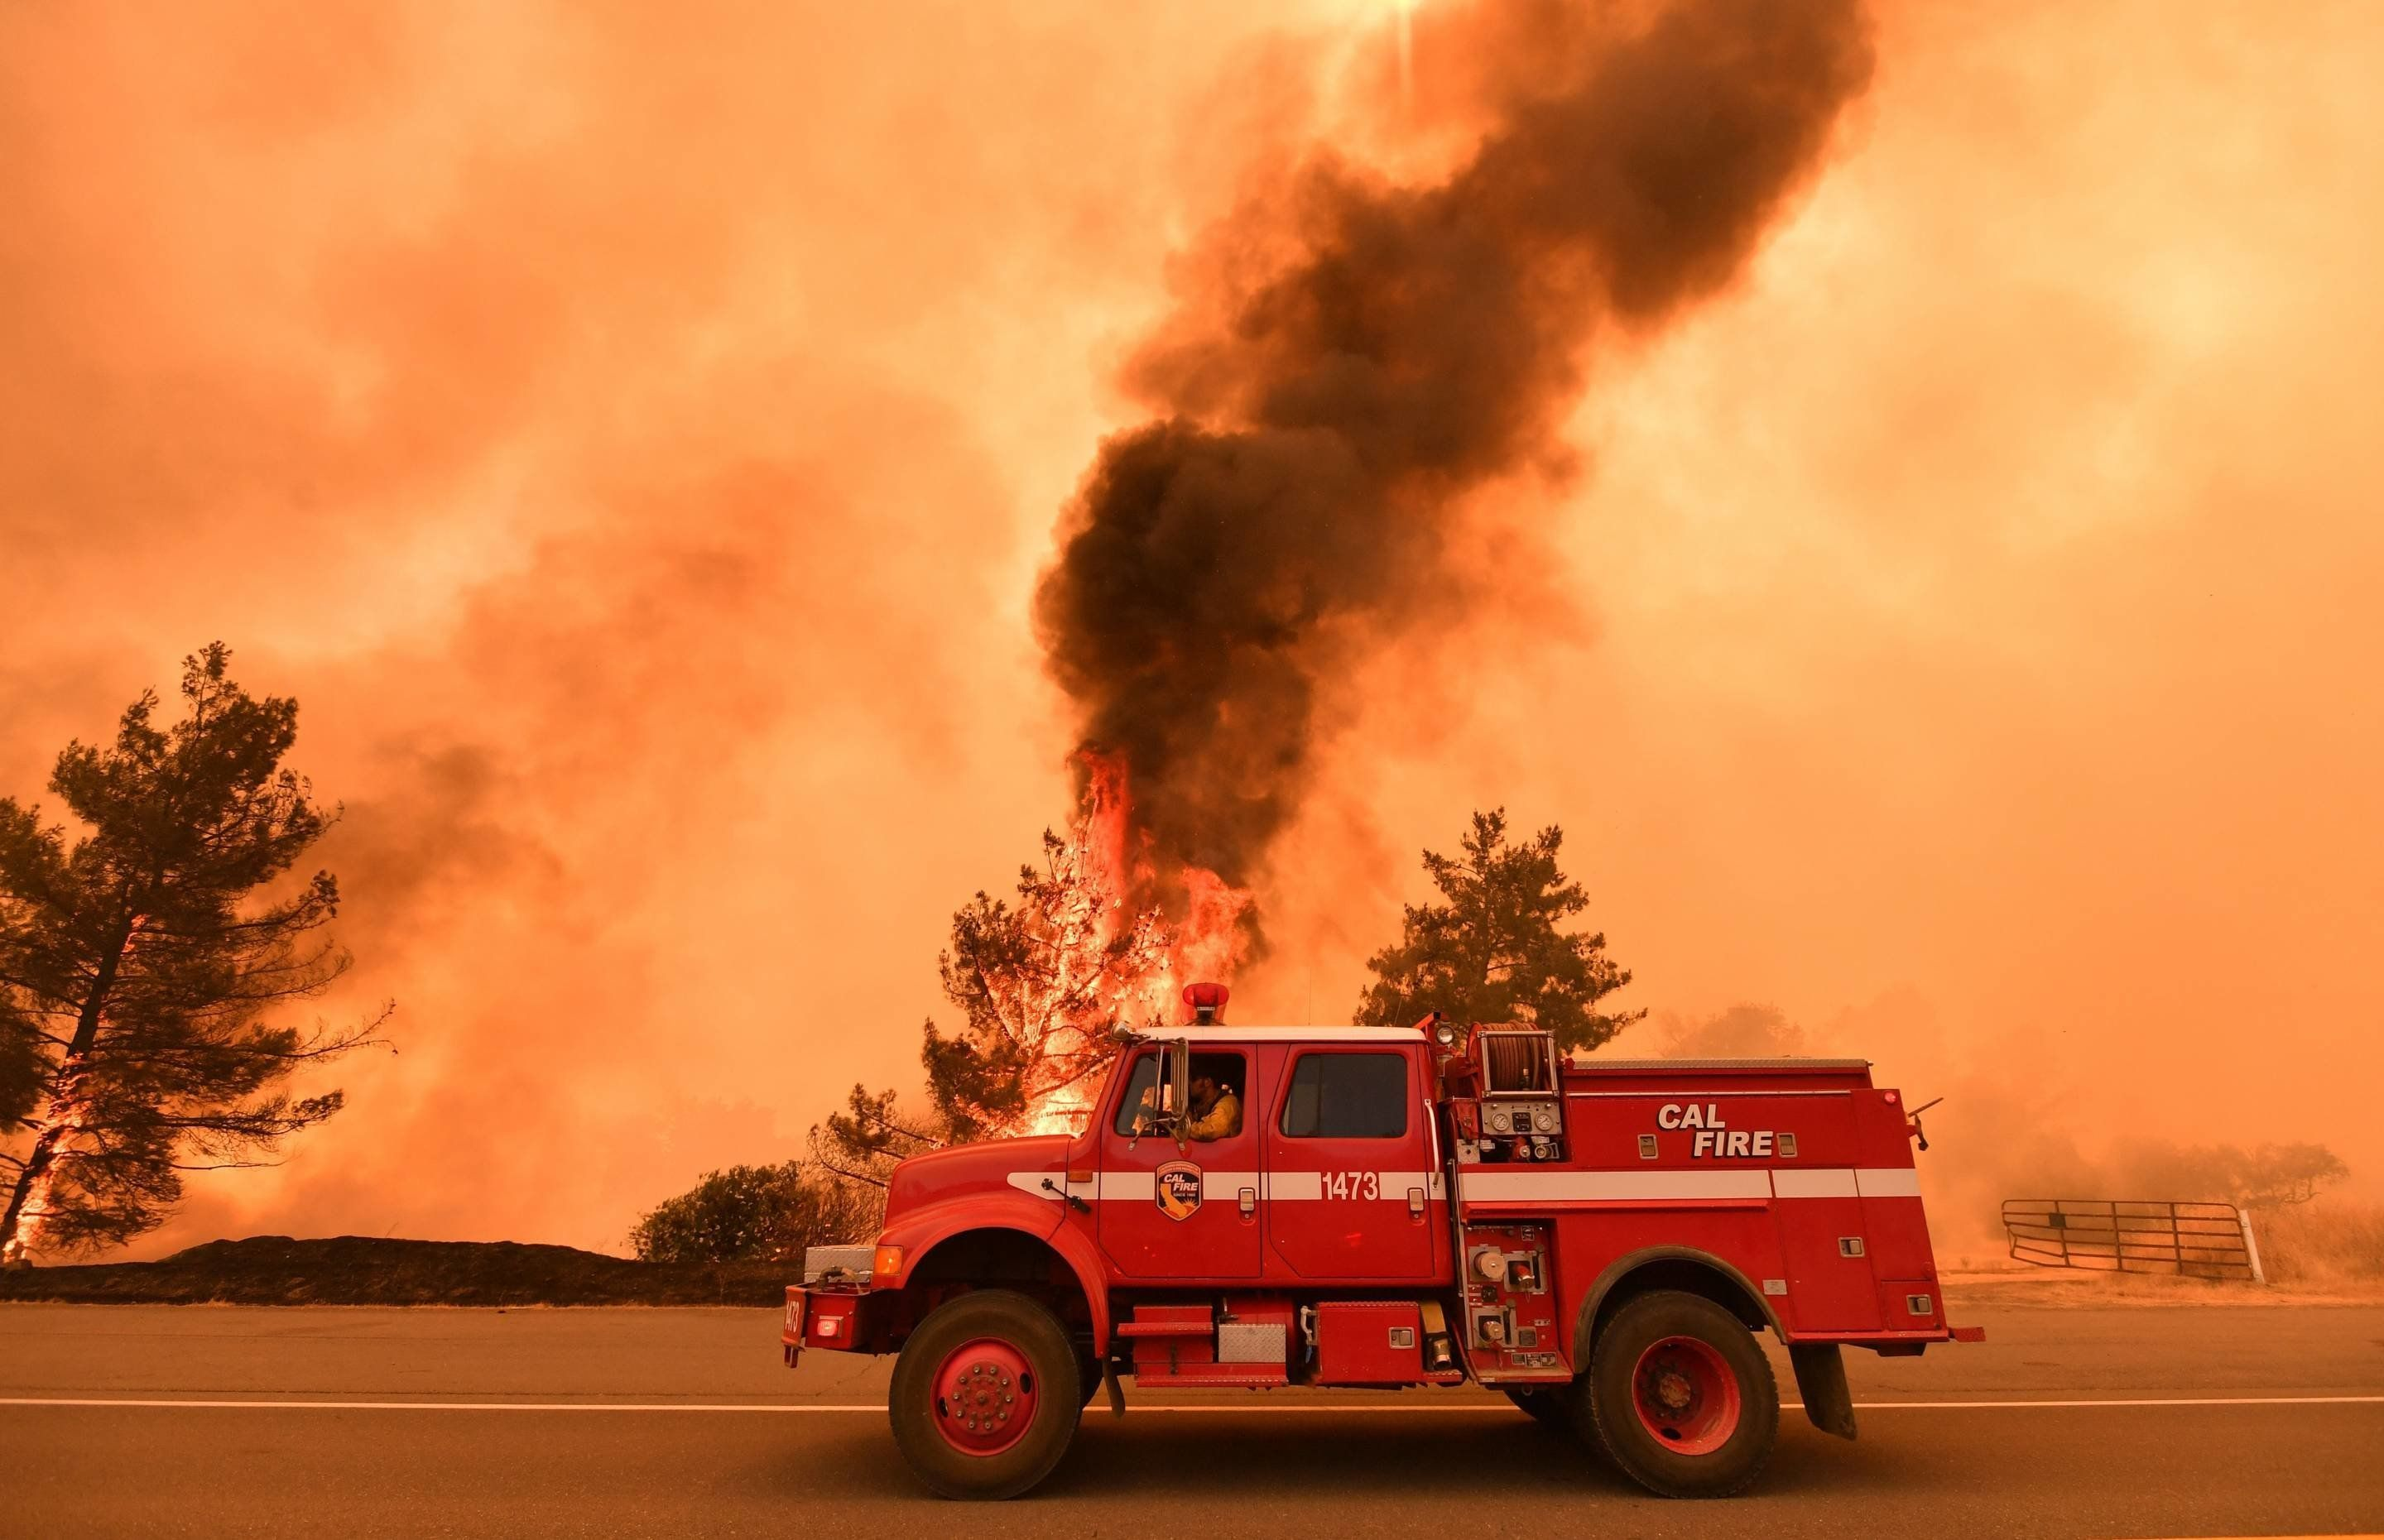 California Fires: Get the Latest 2018 Wildfire Updates From These Google Maps